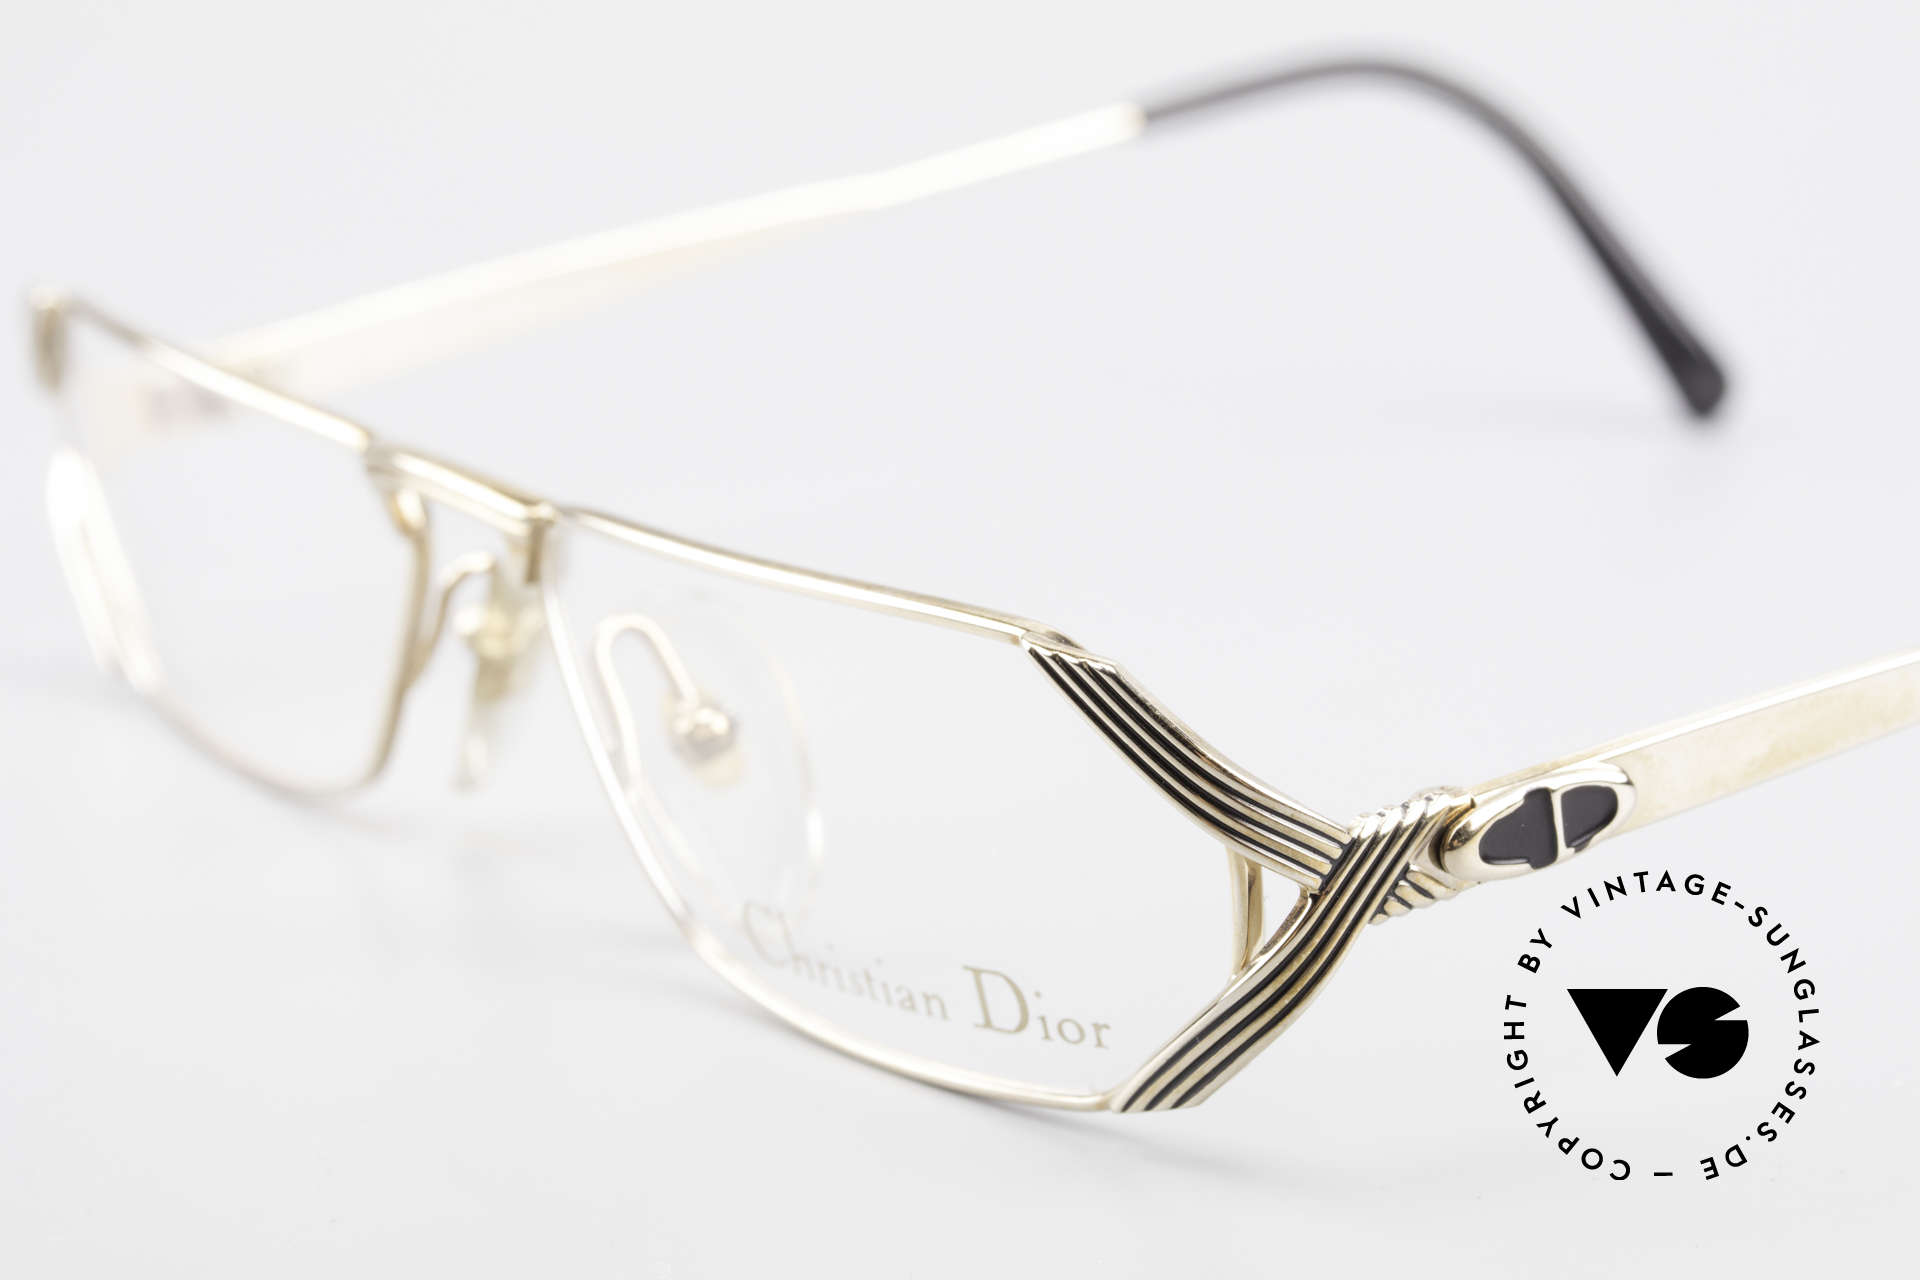 Christian Dior 2617 Rare Vintage Reading Glasses, utterly top-notch craftsmanship - U must feel this!, Made for Men